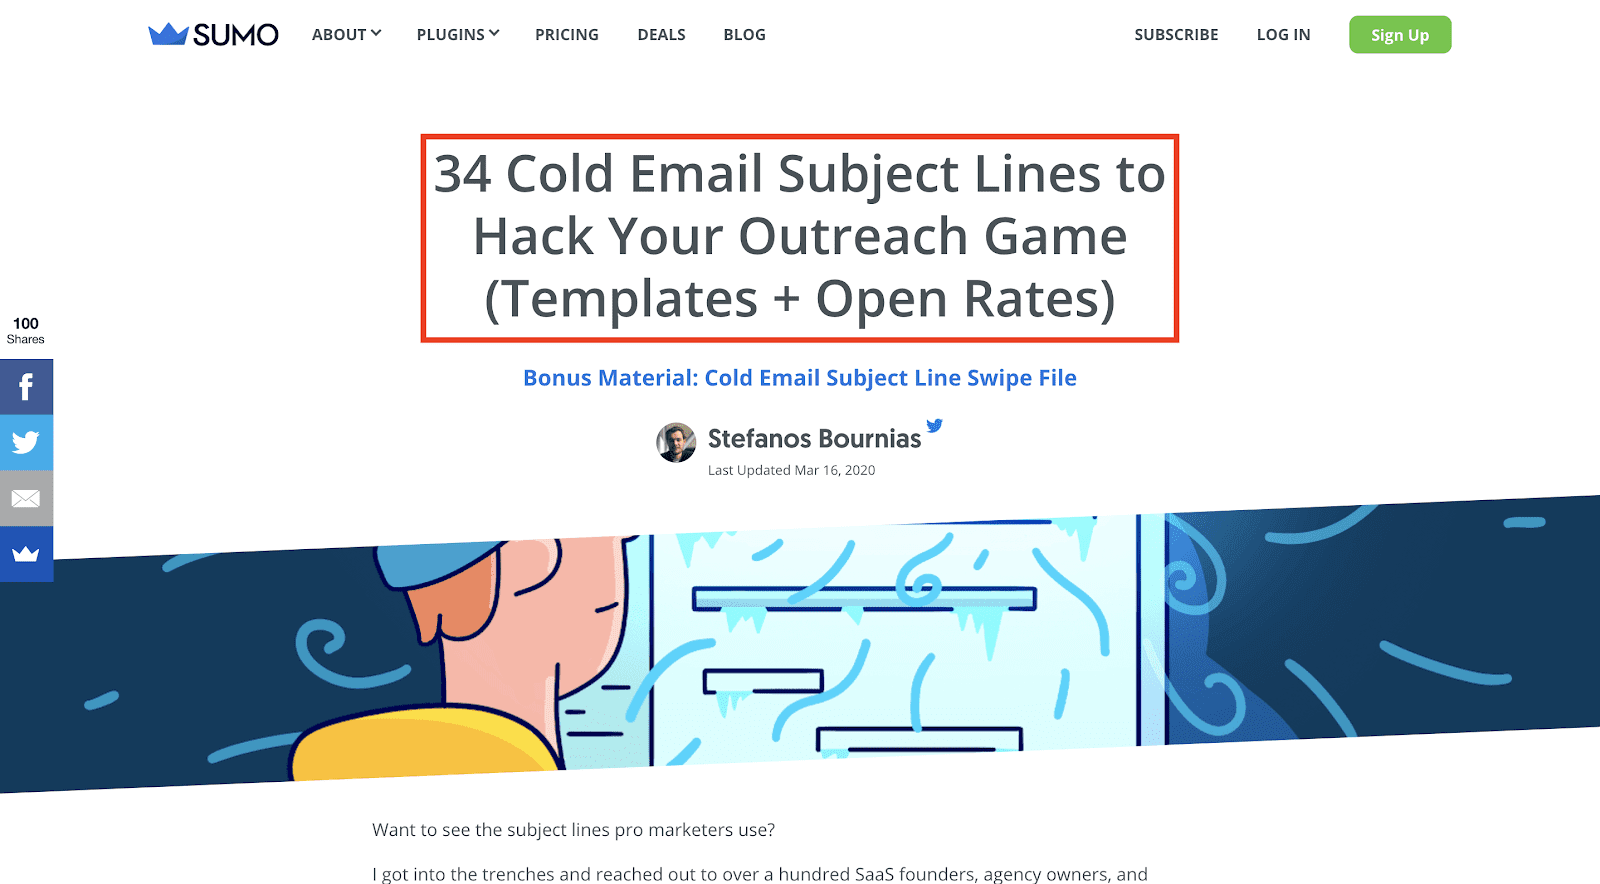 Cold Email Subject Line Expert Roundup